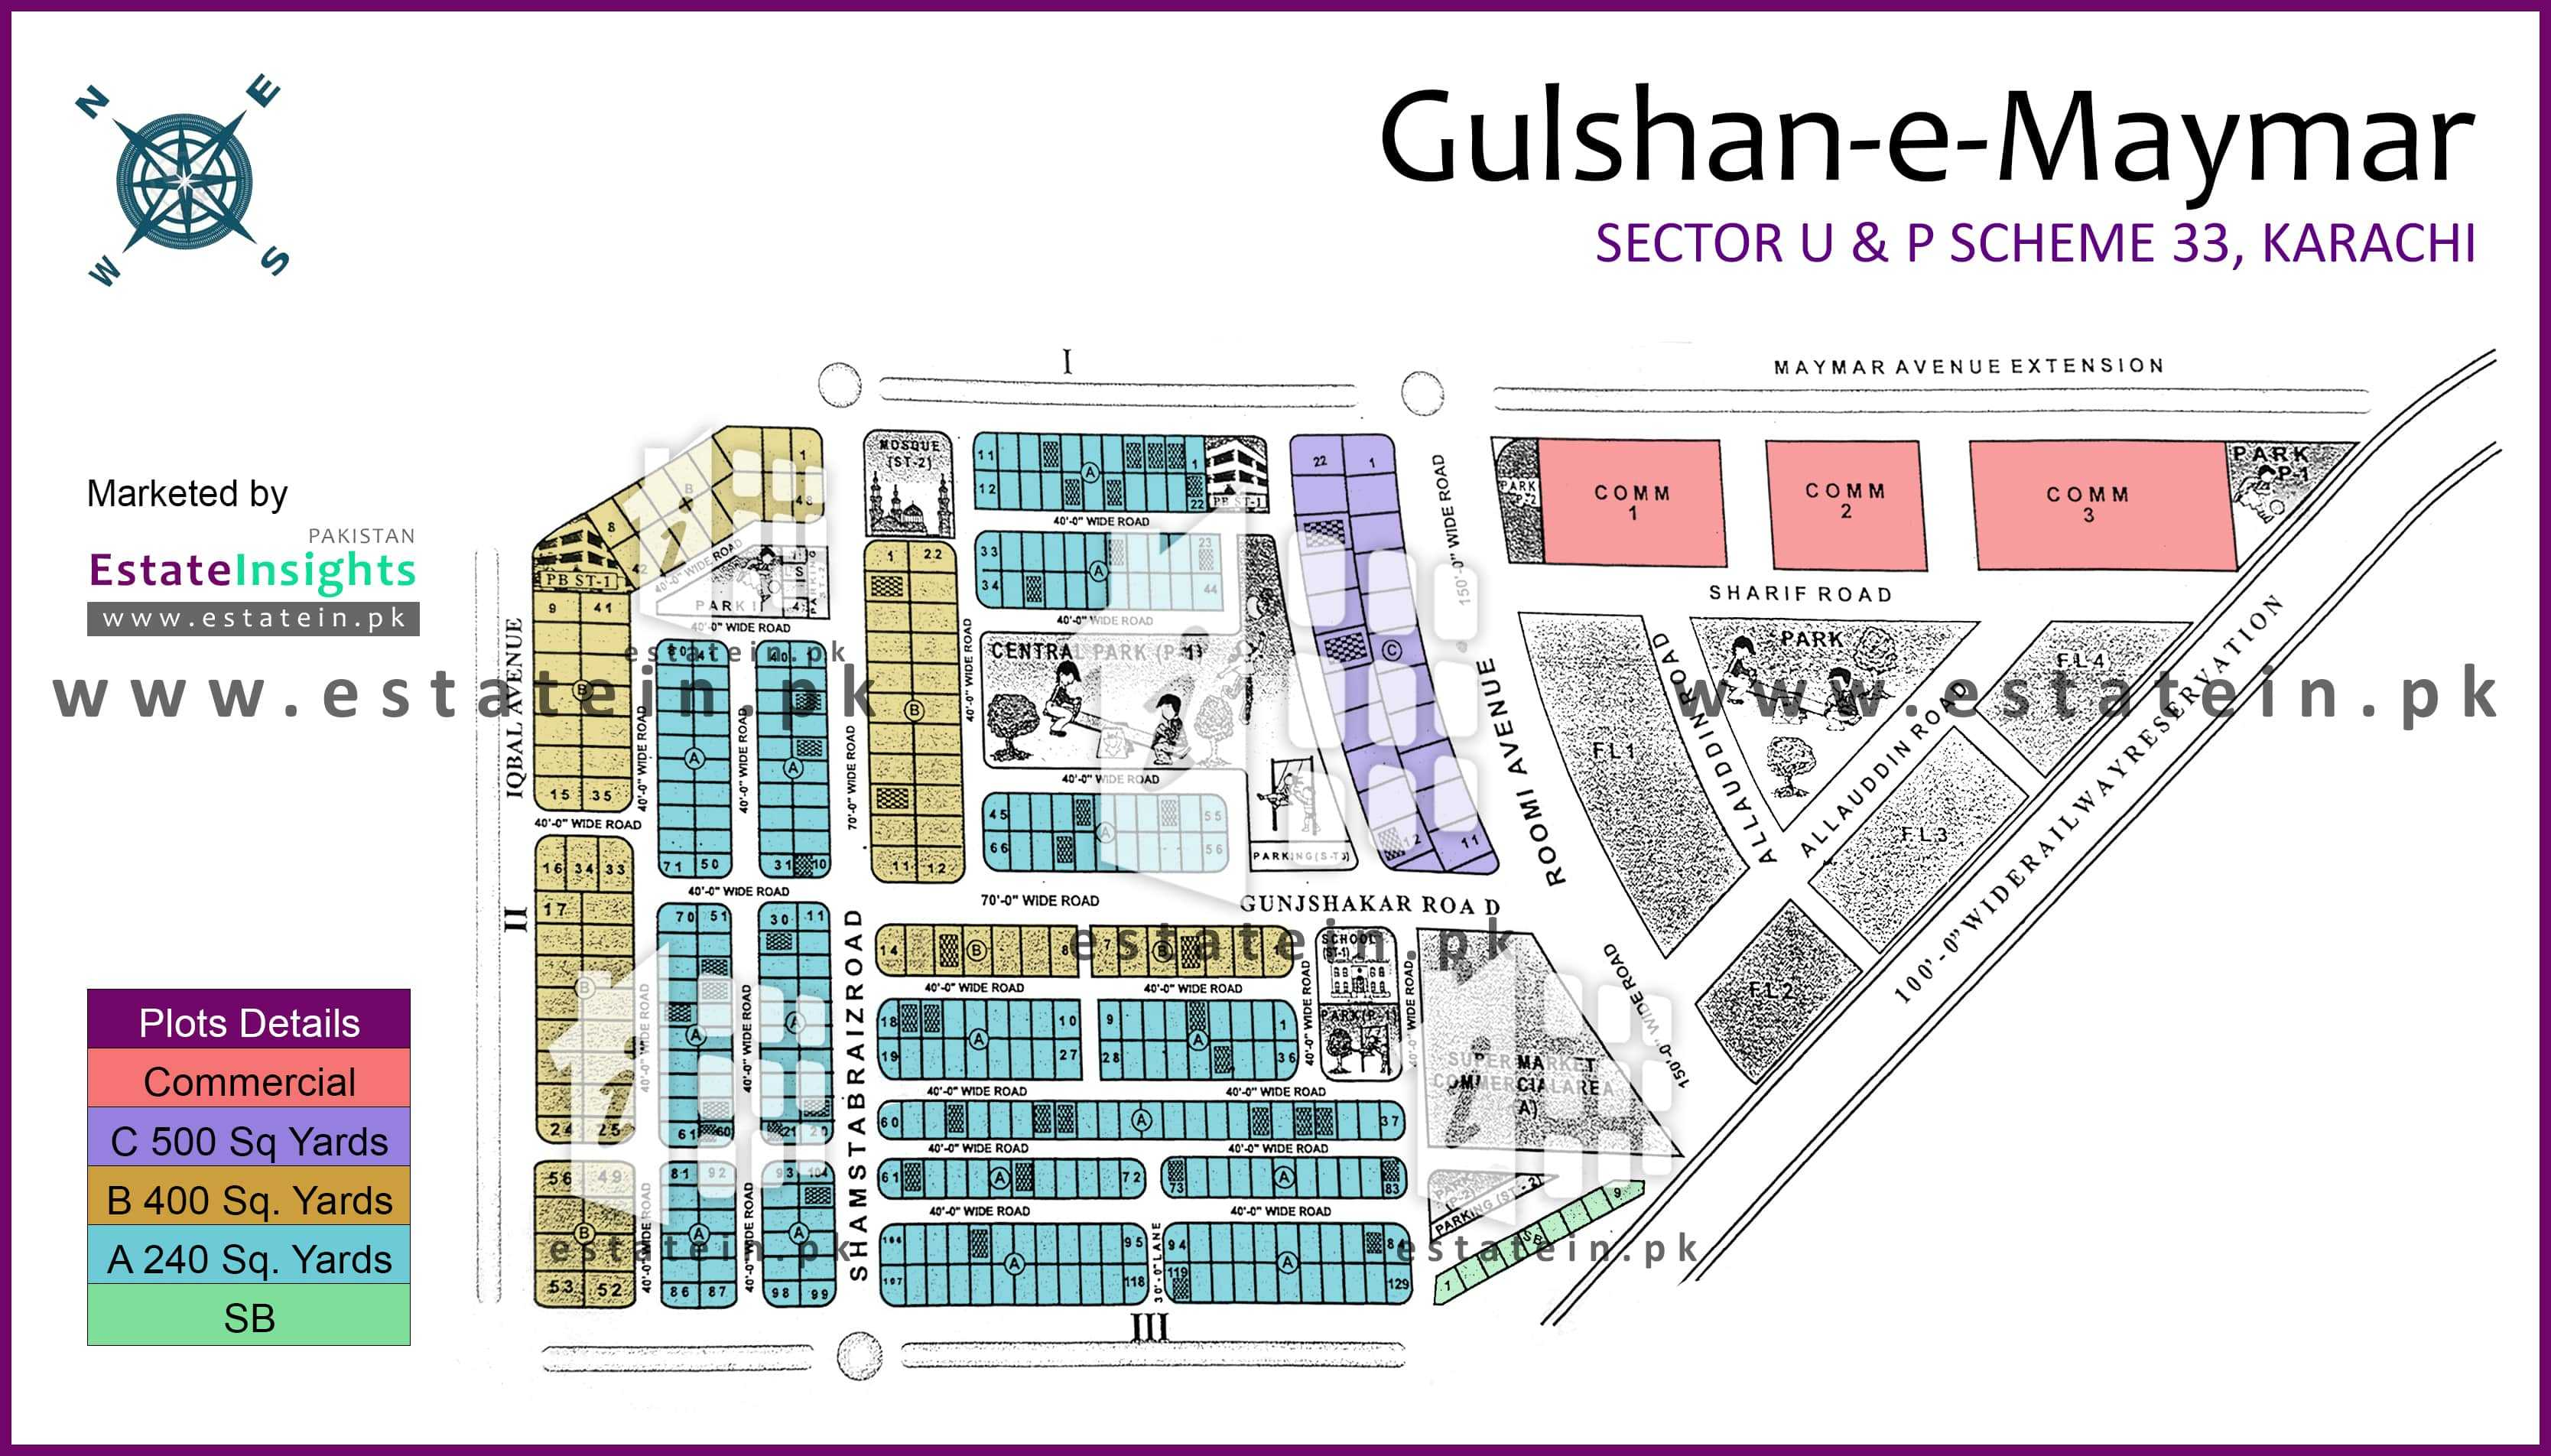 Site Plan of Block U3 of Sector U